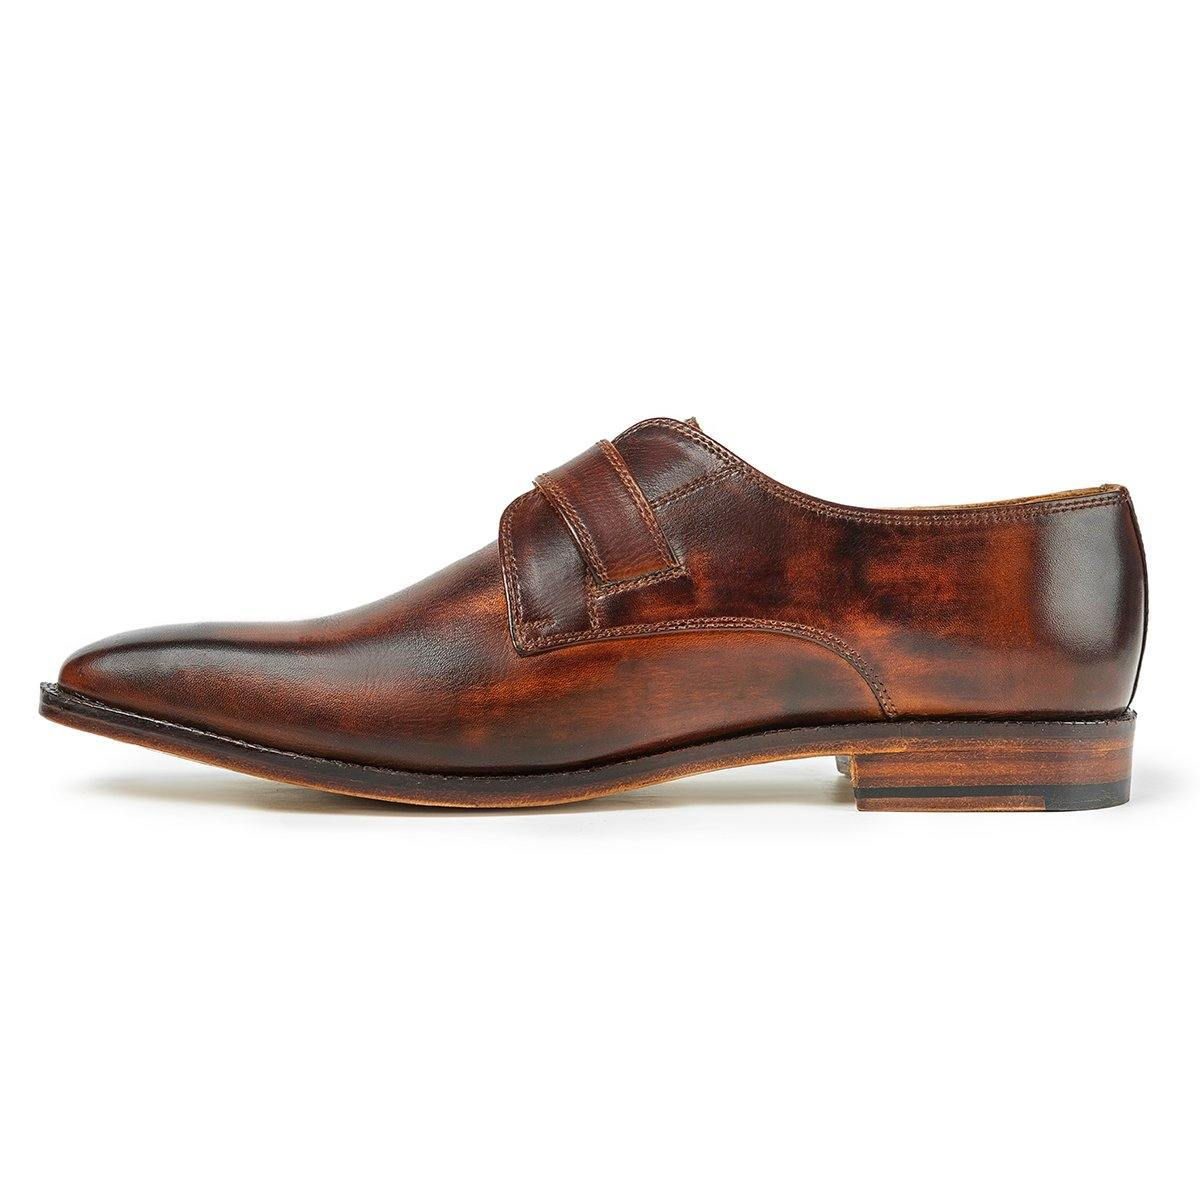 Vincent  - Single Monk Strap in Tobacco - TLC - The Leather Crafts